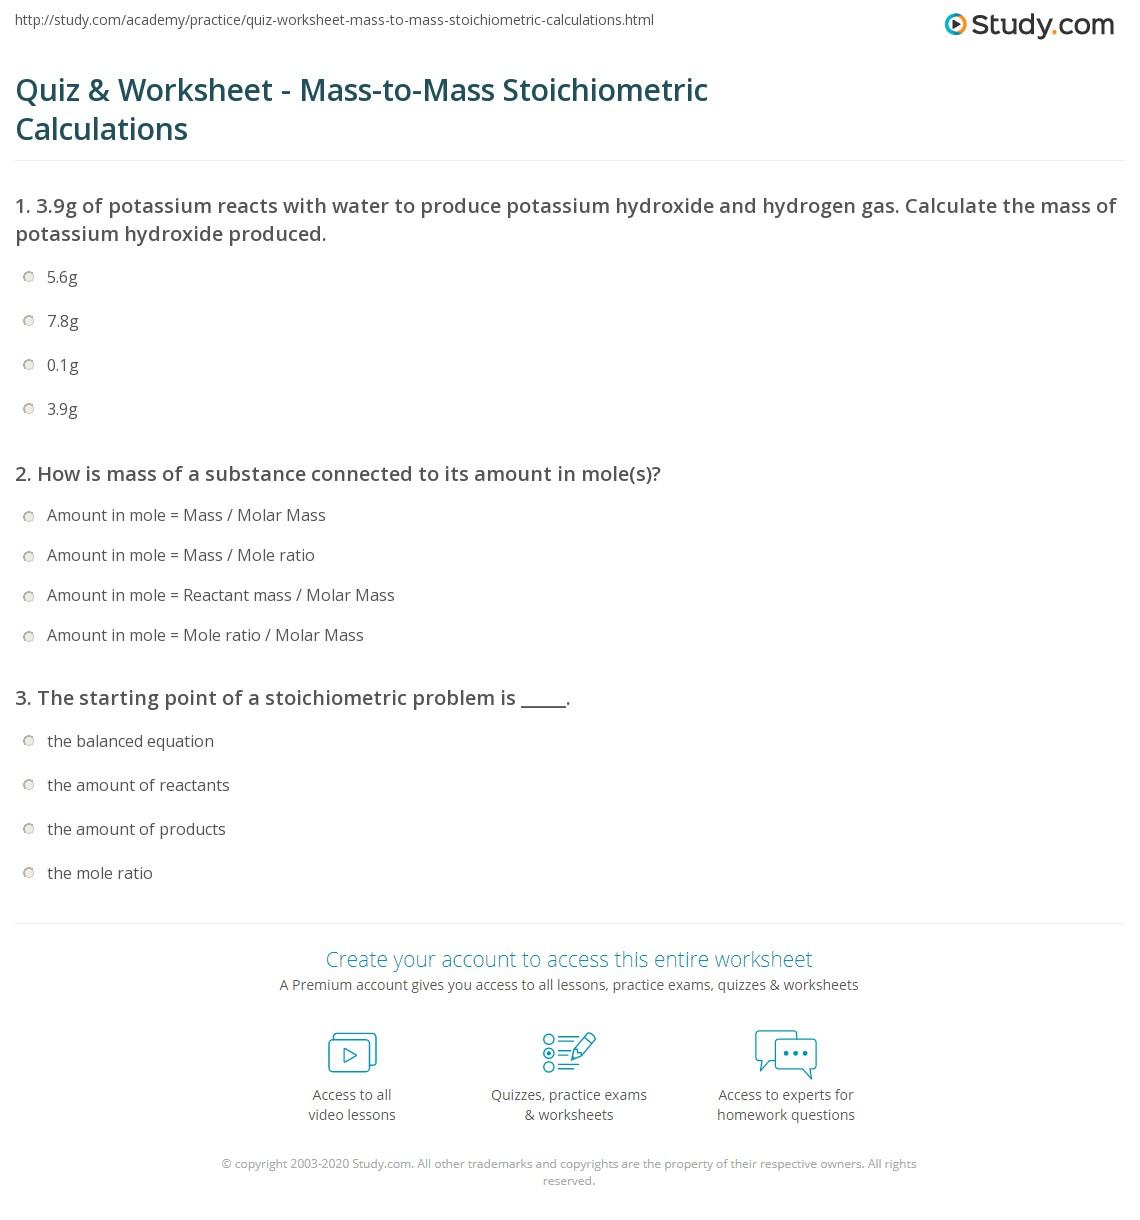 Worksheet Mole Ratio Worksheet quiz worksheet mass to stoichiometric calculations print worksheet